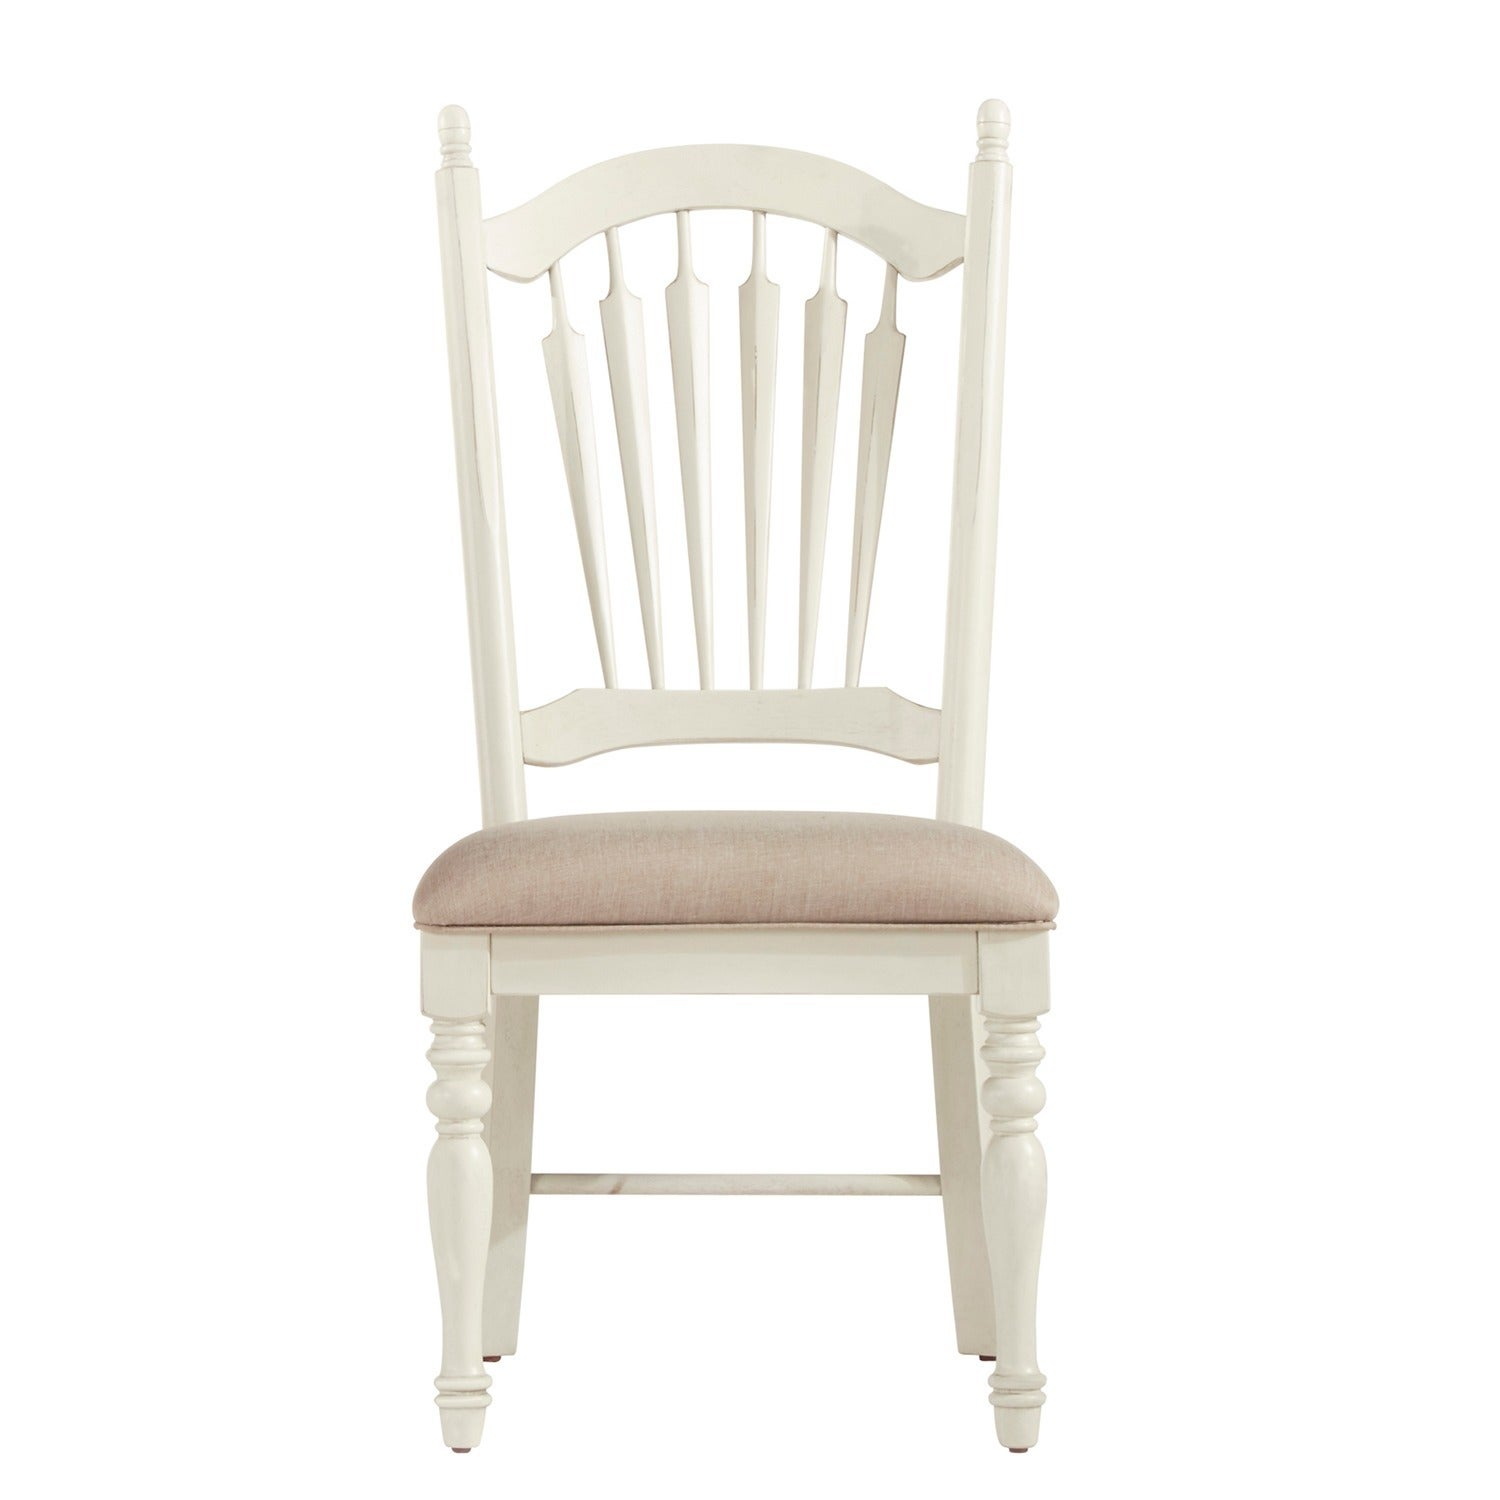 McKay Country Antique White Slat Back Dining Chair (Set of 2) by iNSPIRE Q  Classic - Free Shipping Today - Overstock - 17228684 - McKay Country Antique White Slat Back Dining Chair (Set Of 2) By